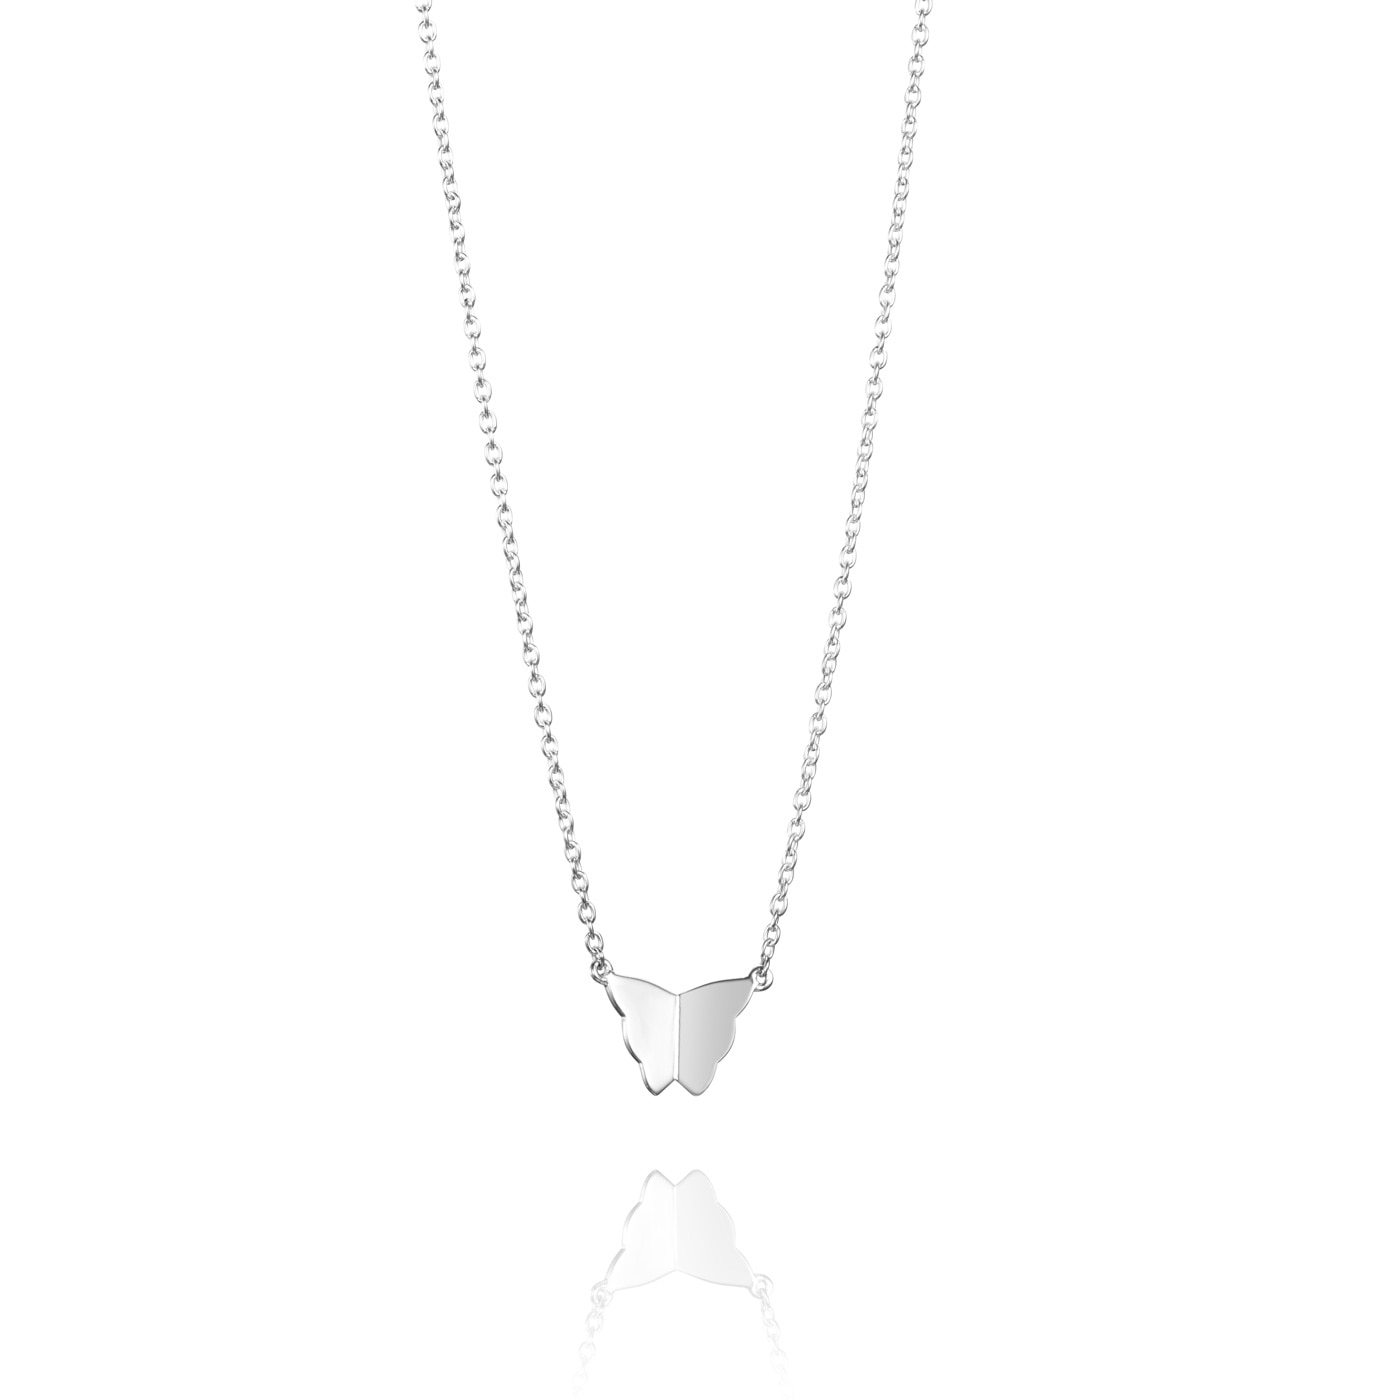 Little-Miss-Butterfly-Necklace-10-100-01017(2)